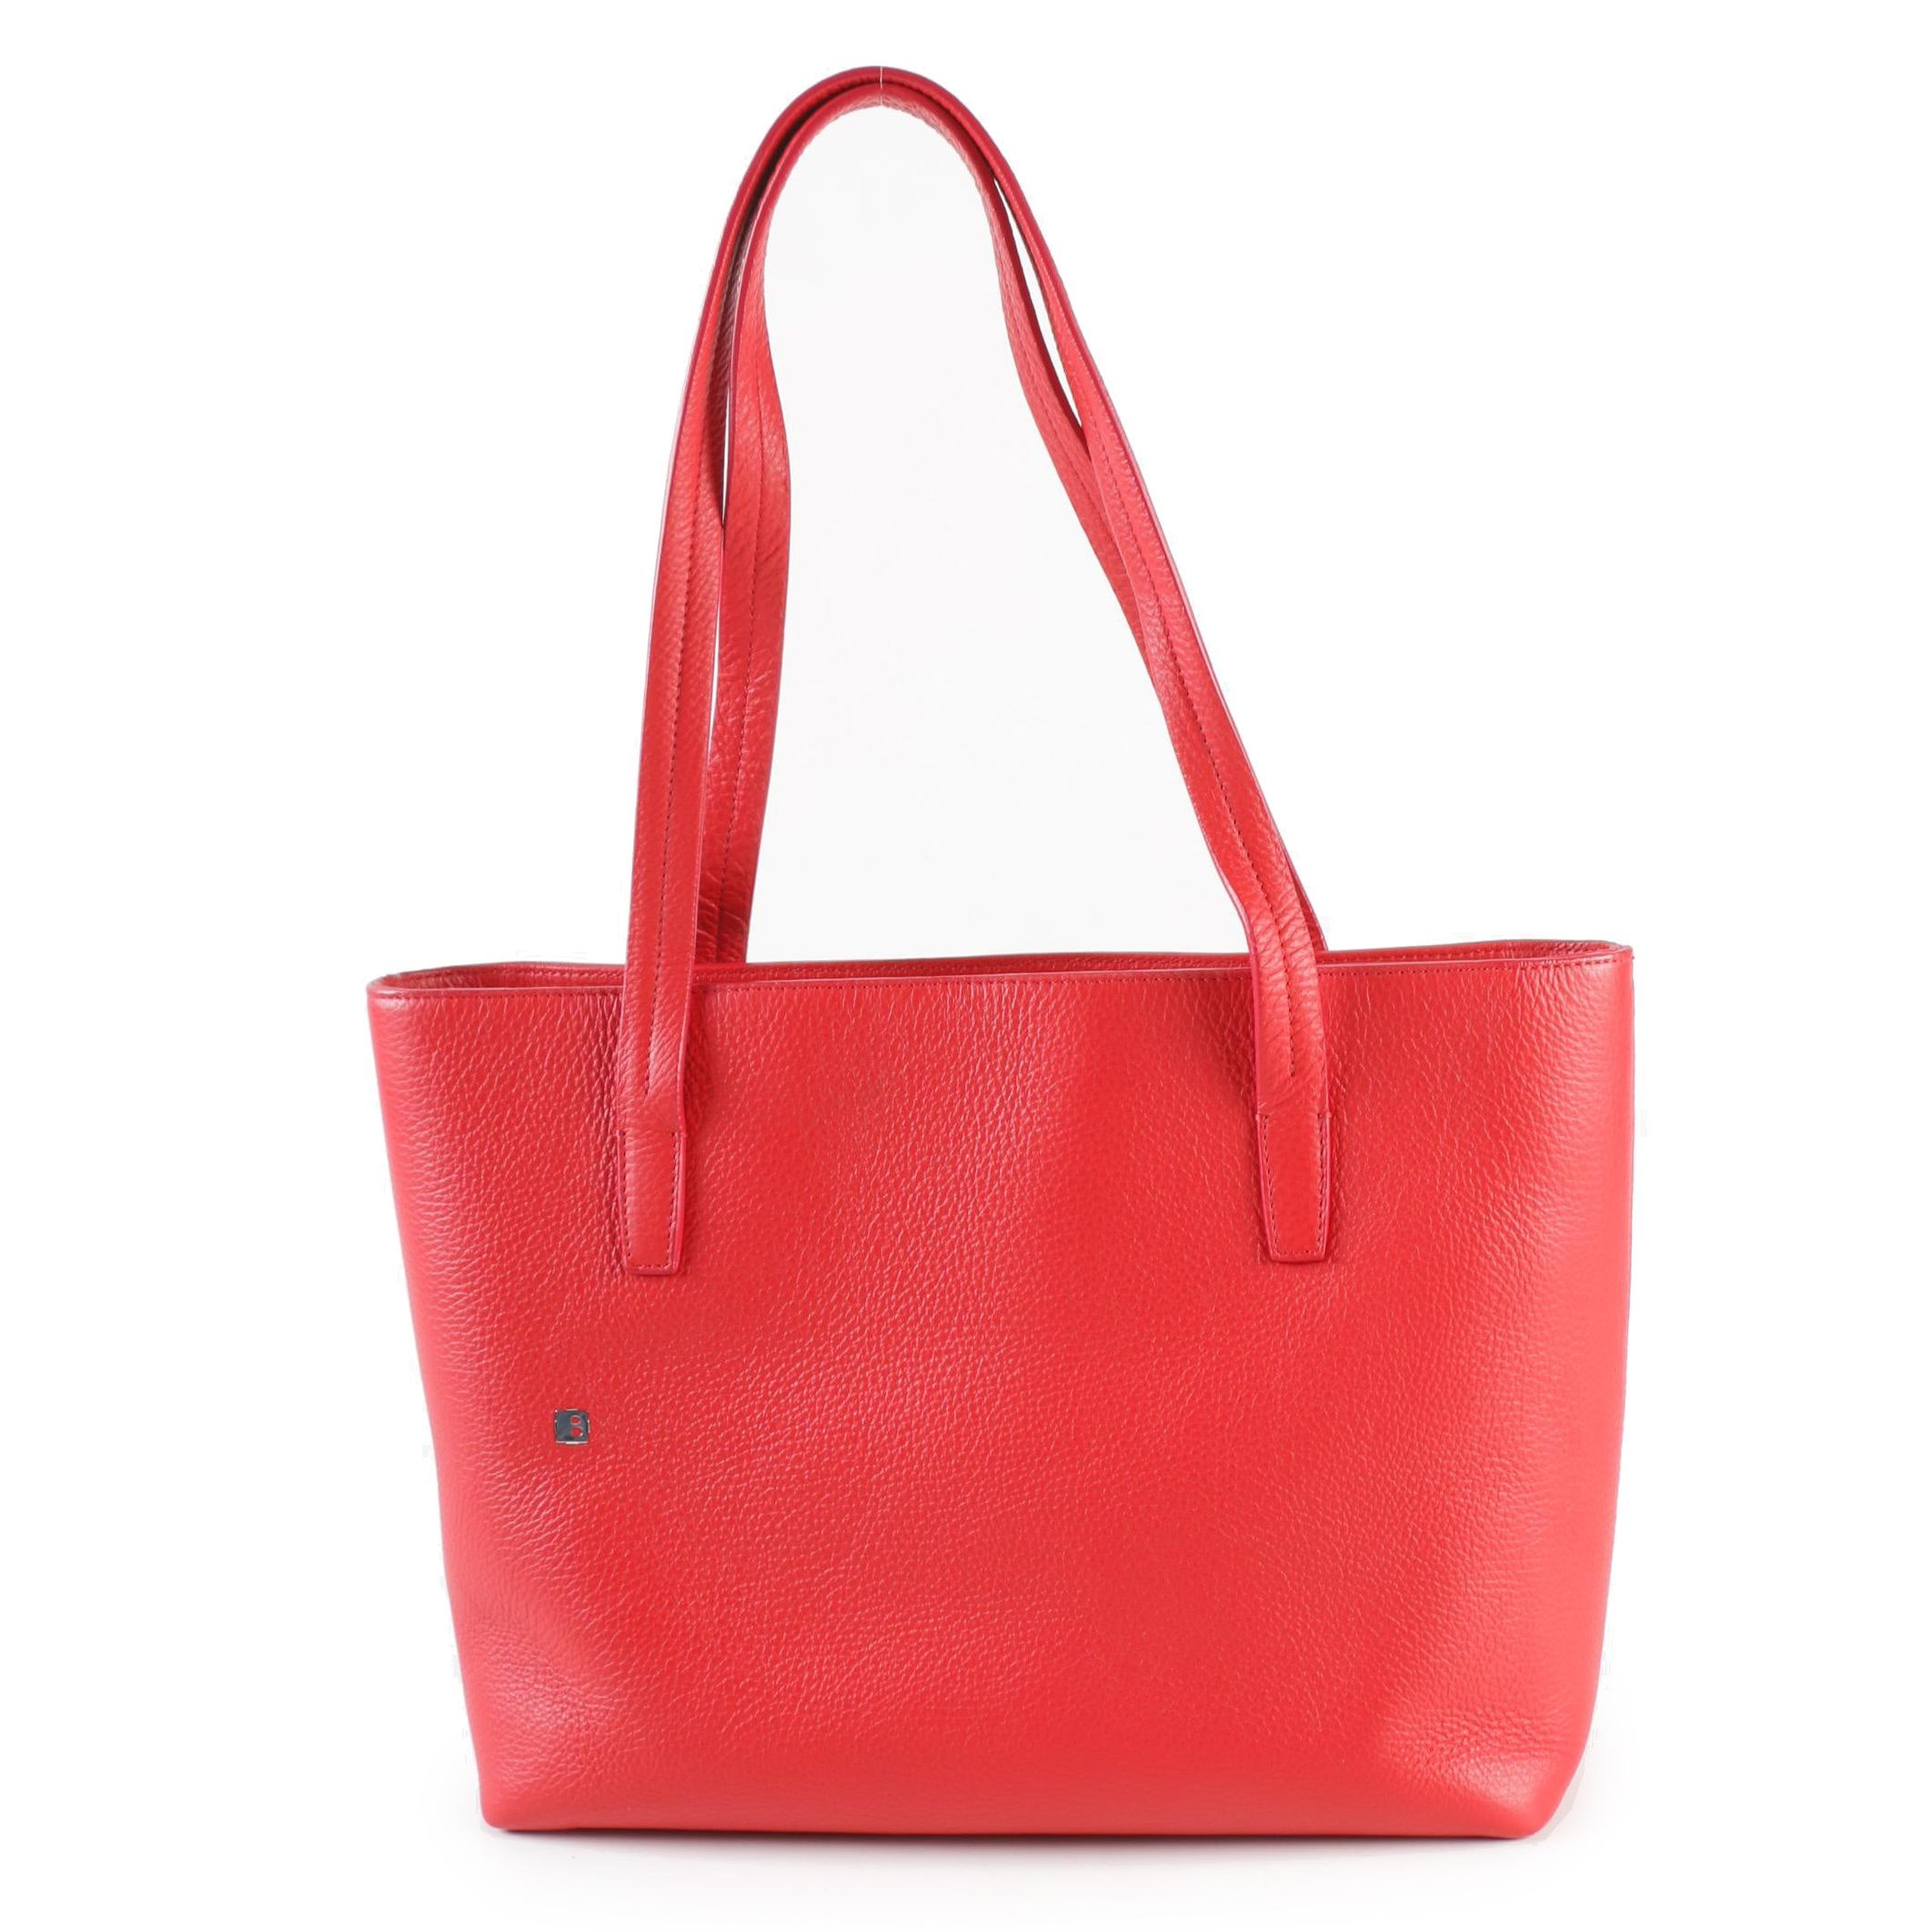 Bally Red Pebbled Leather Tote